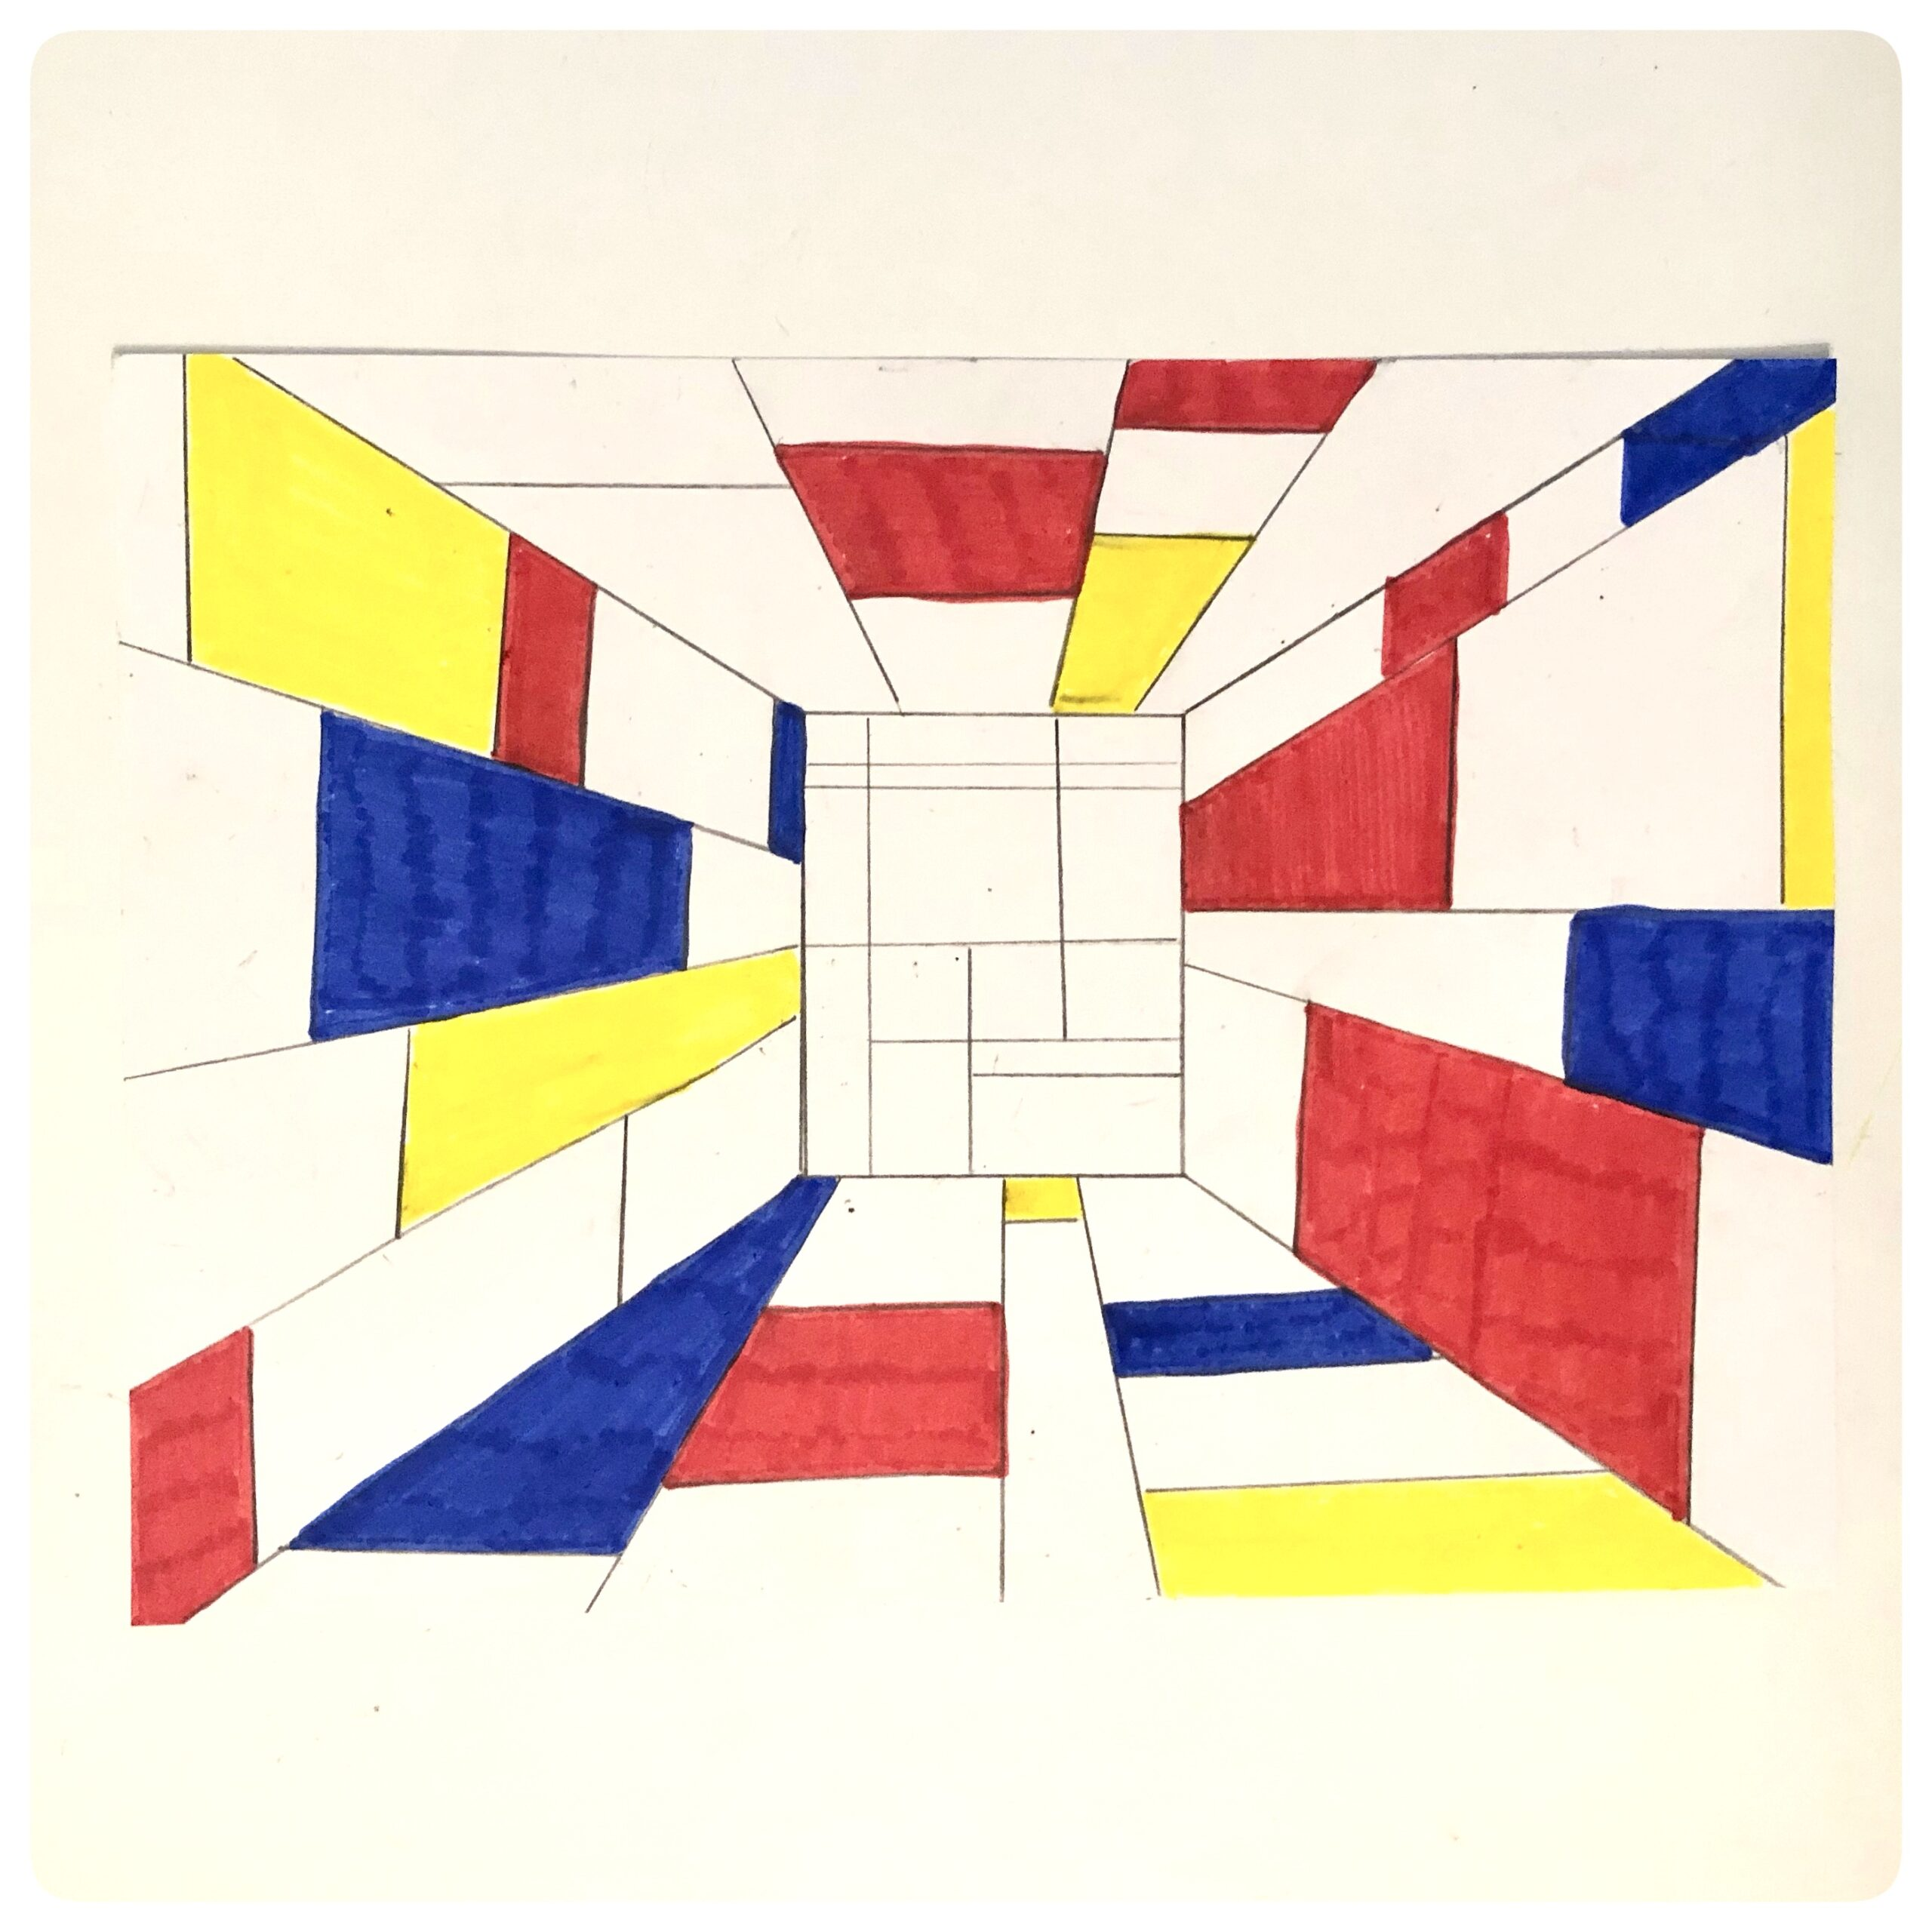 Perspective Drawing: Creating ways to think about abstract art while learning about Piet Mondrian